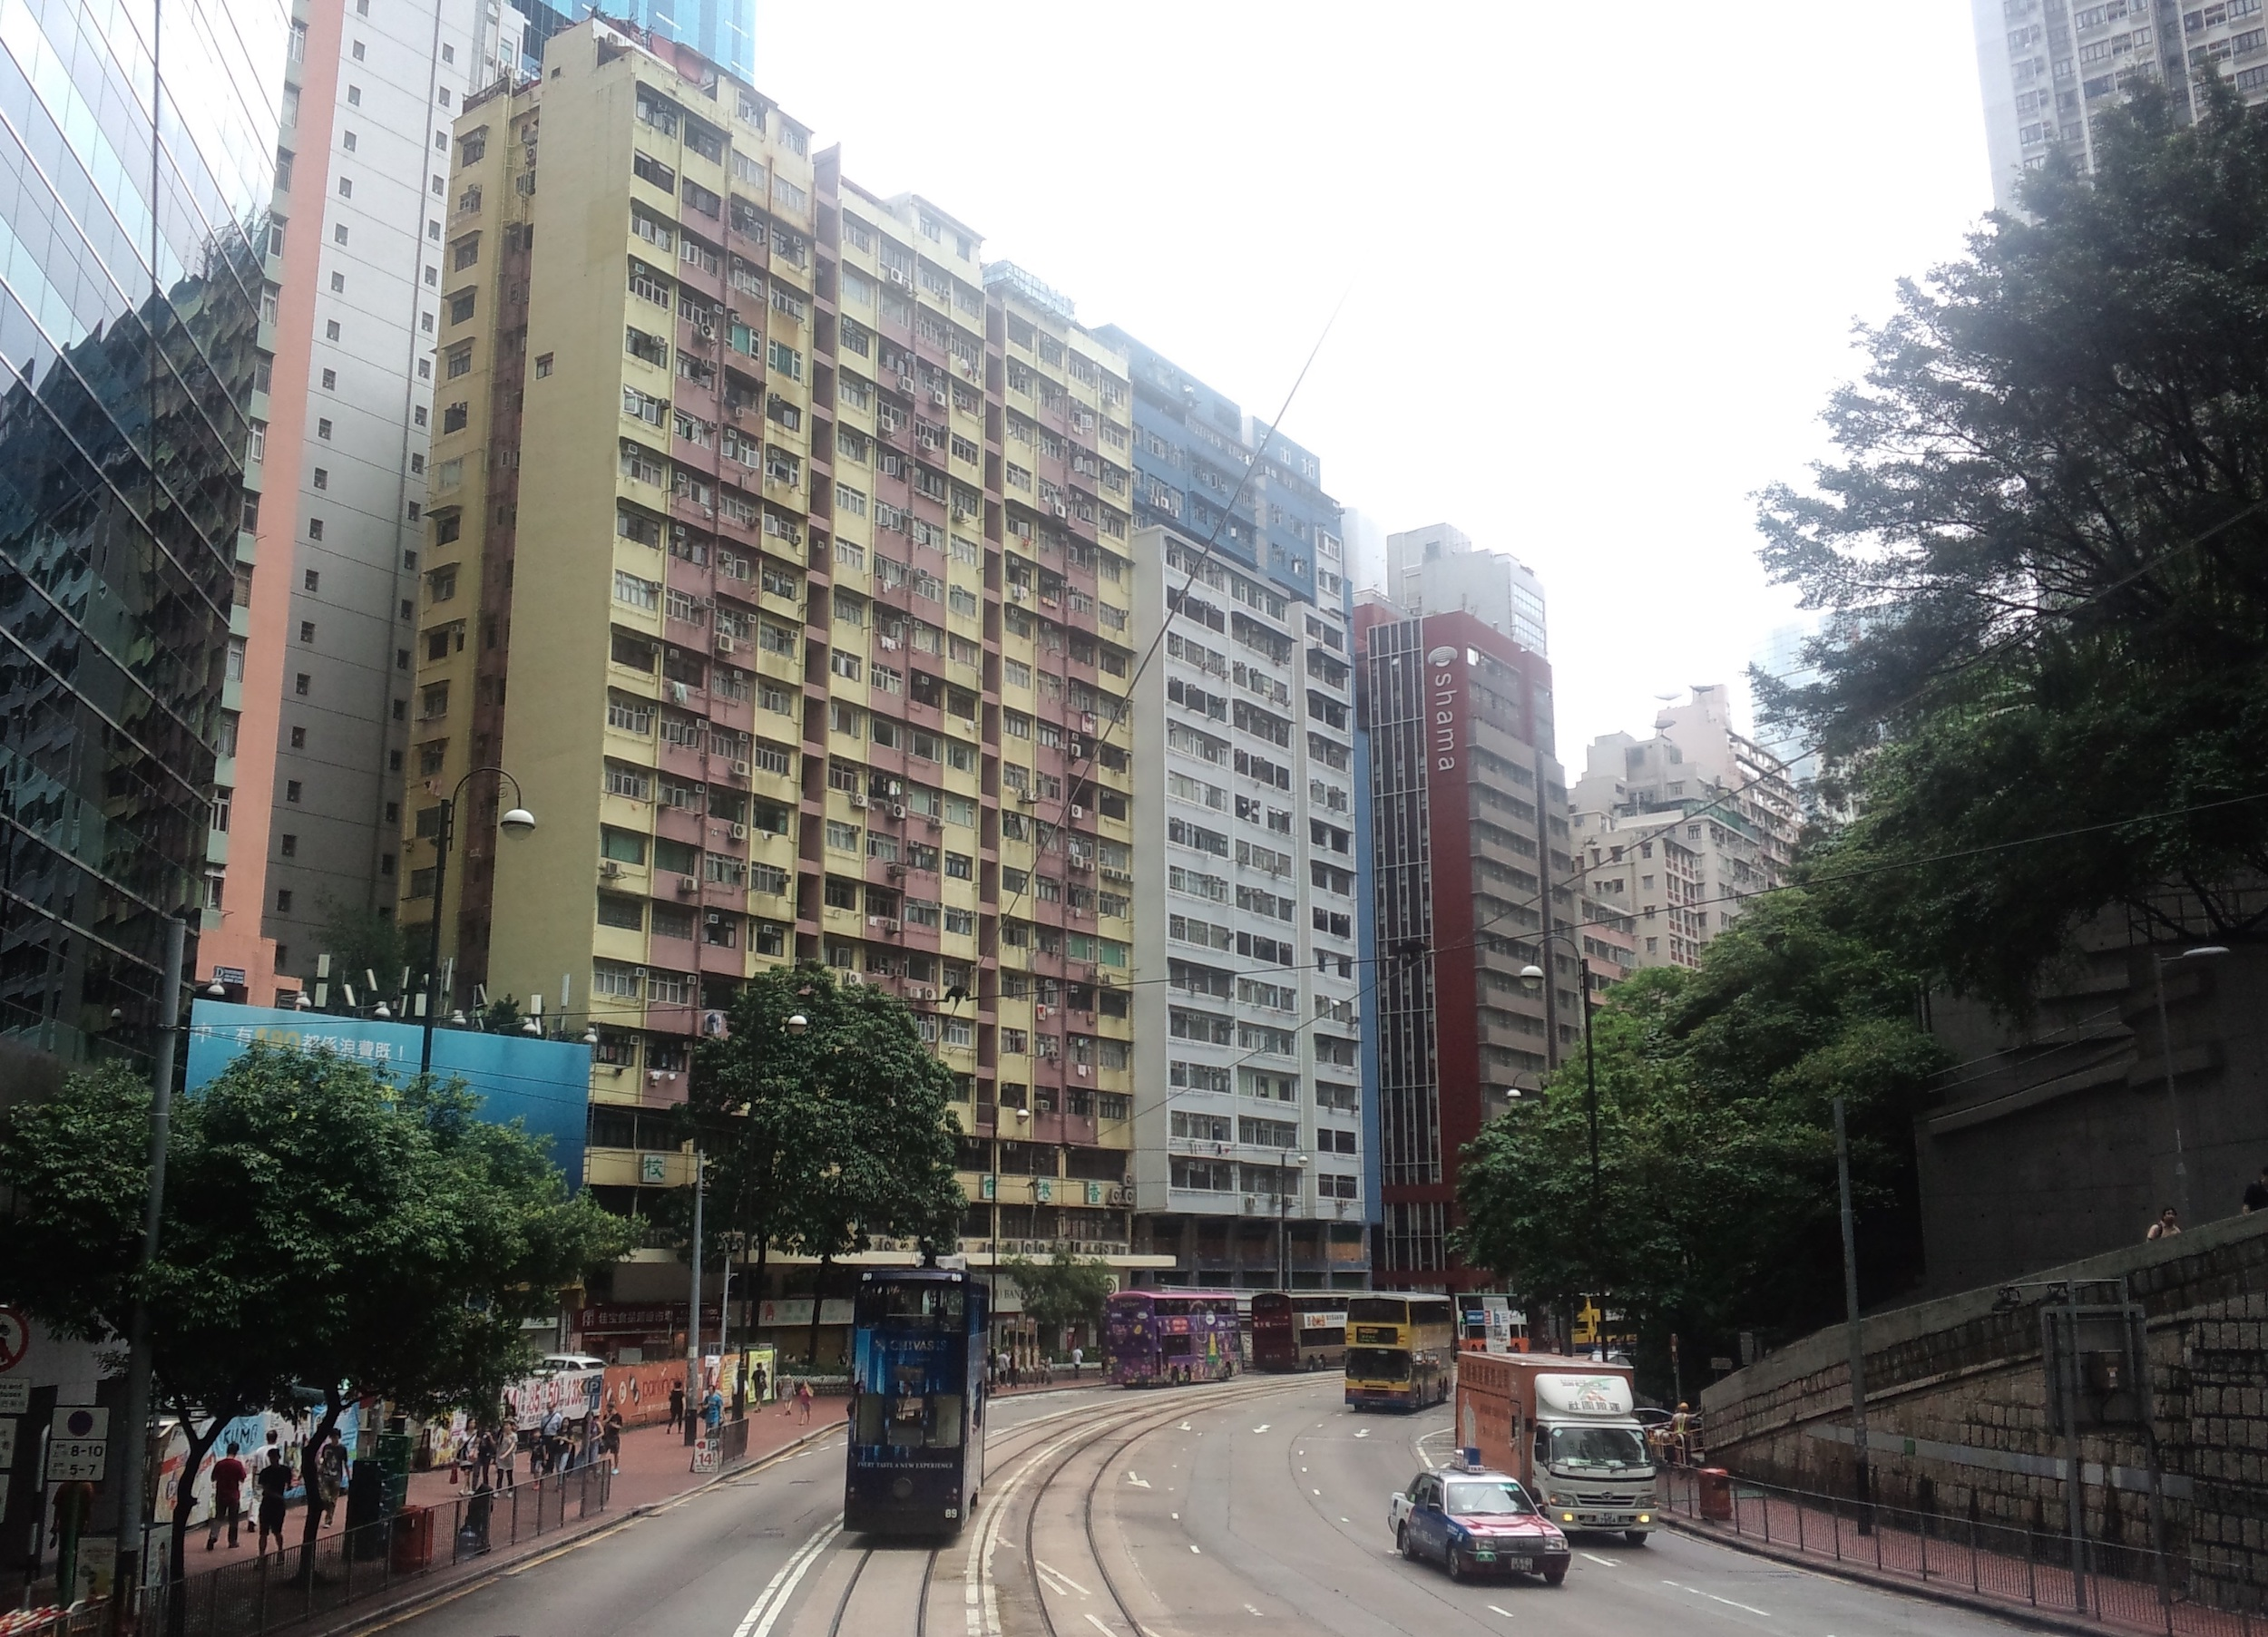 High-rise apartment buildings in Hong Kong, as seen from the upper deck of a tram.